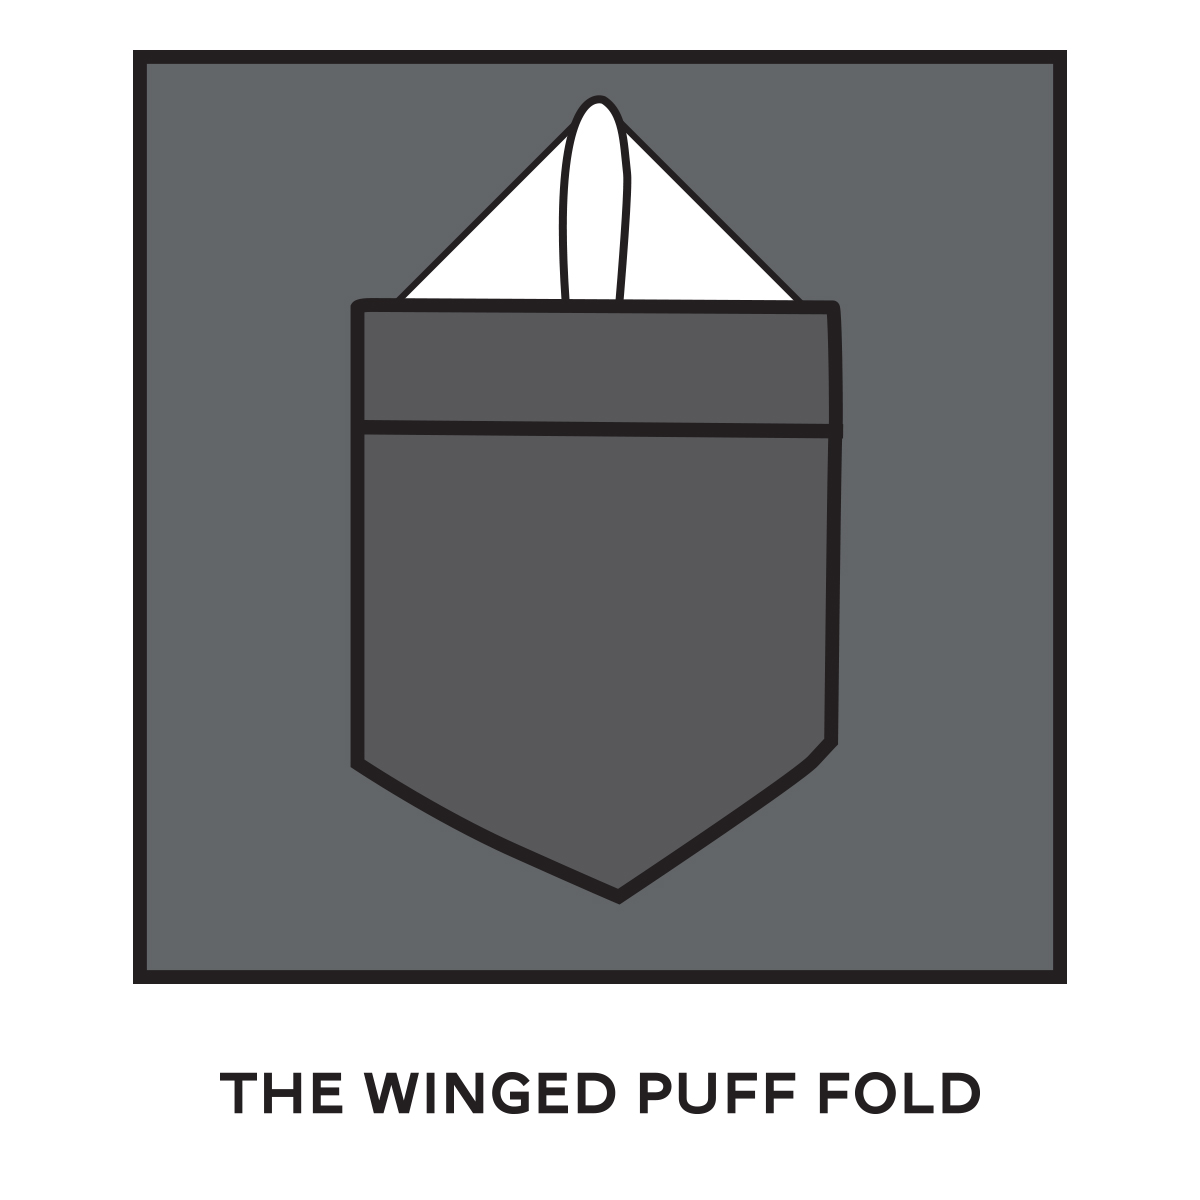 Pocket Square Winged Puff